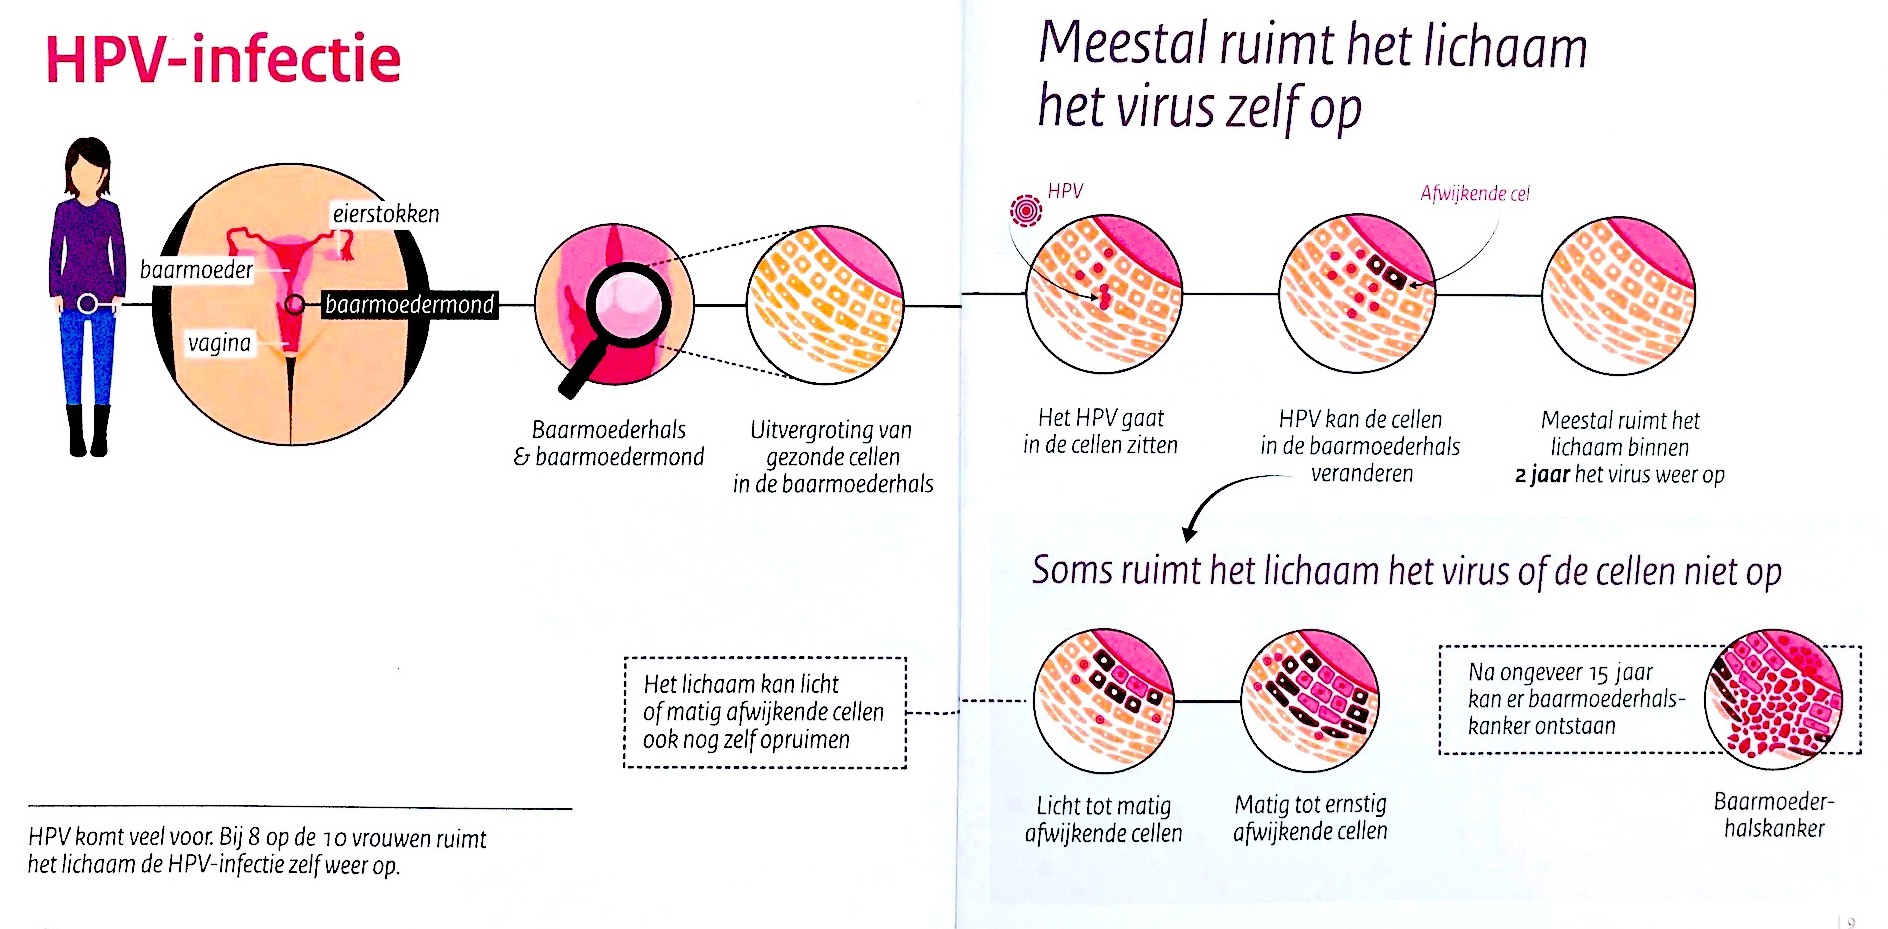 hpv virus is dat een soa)